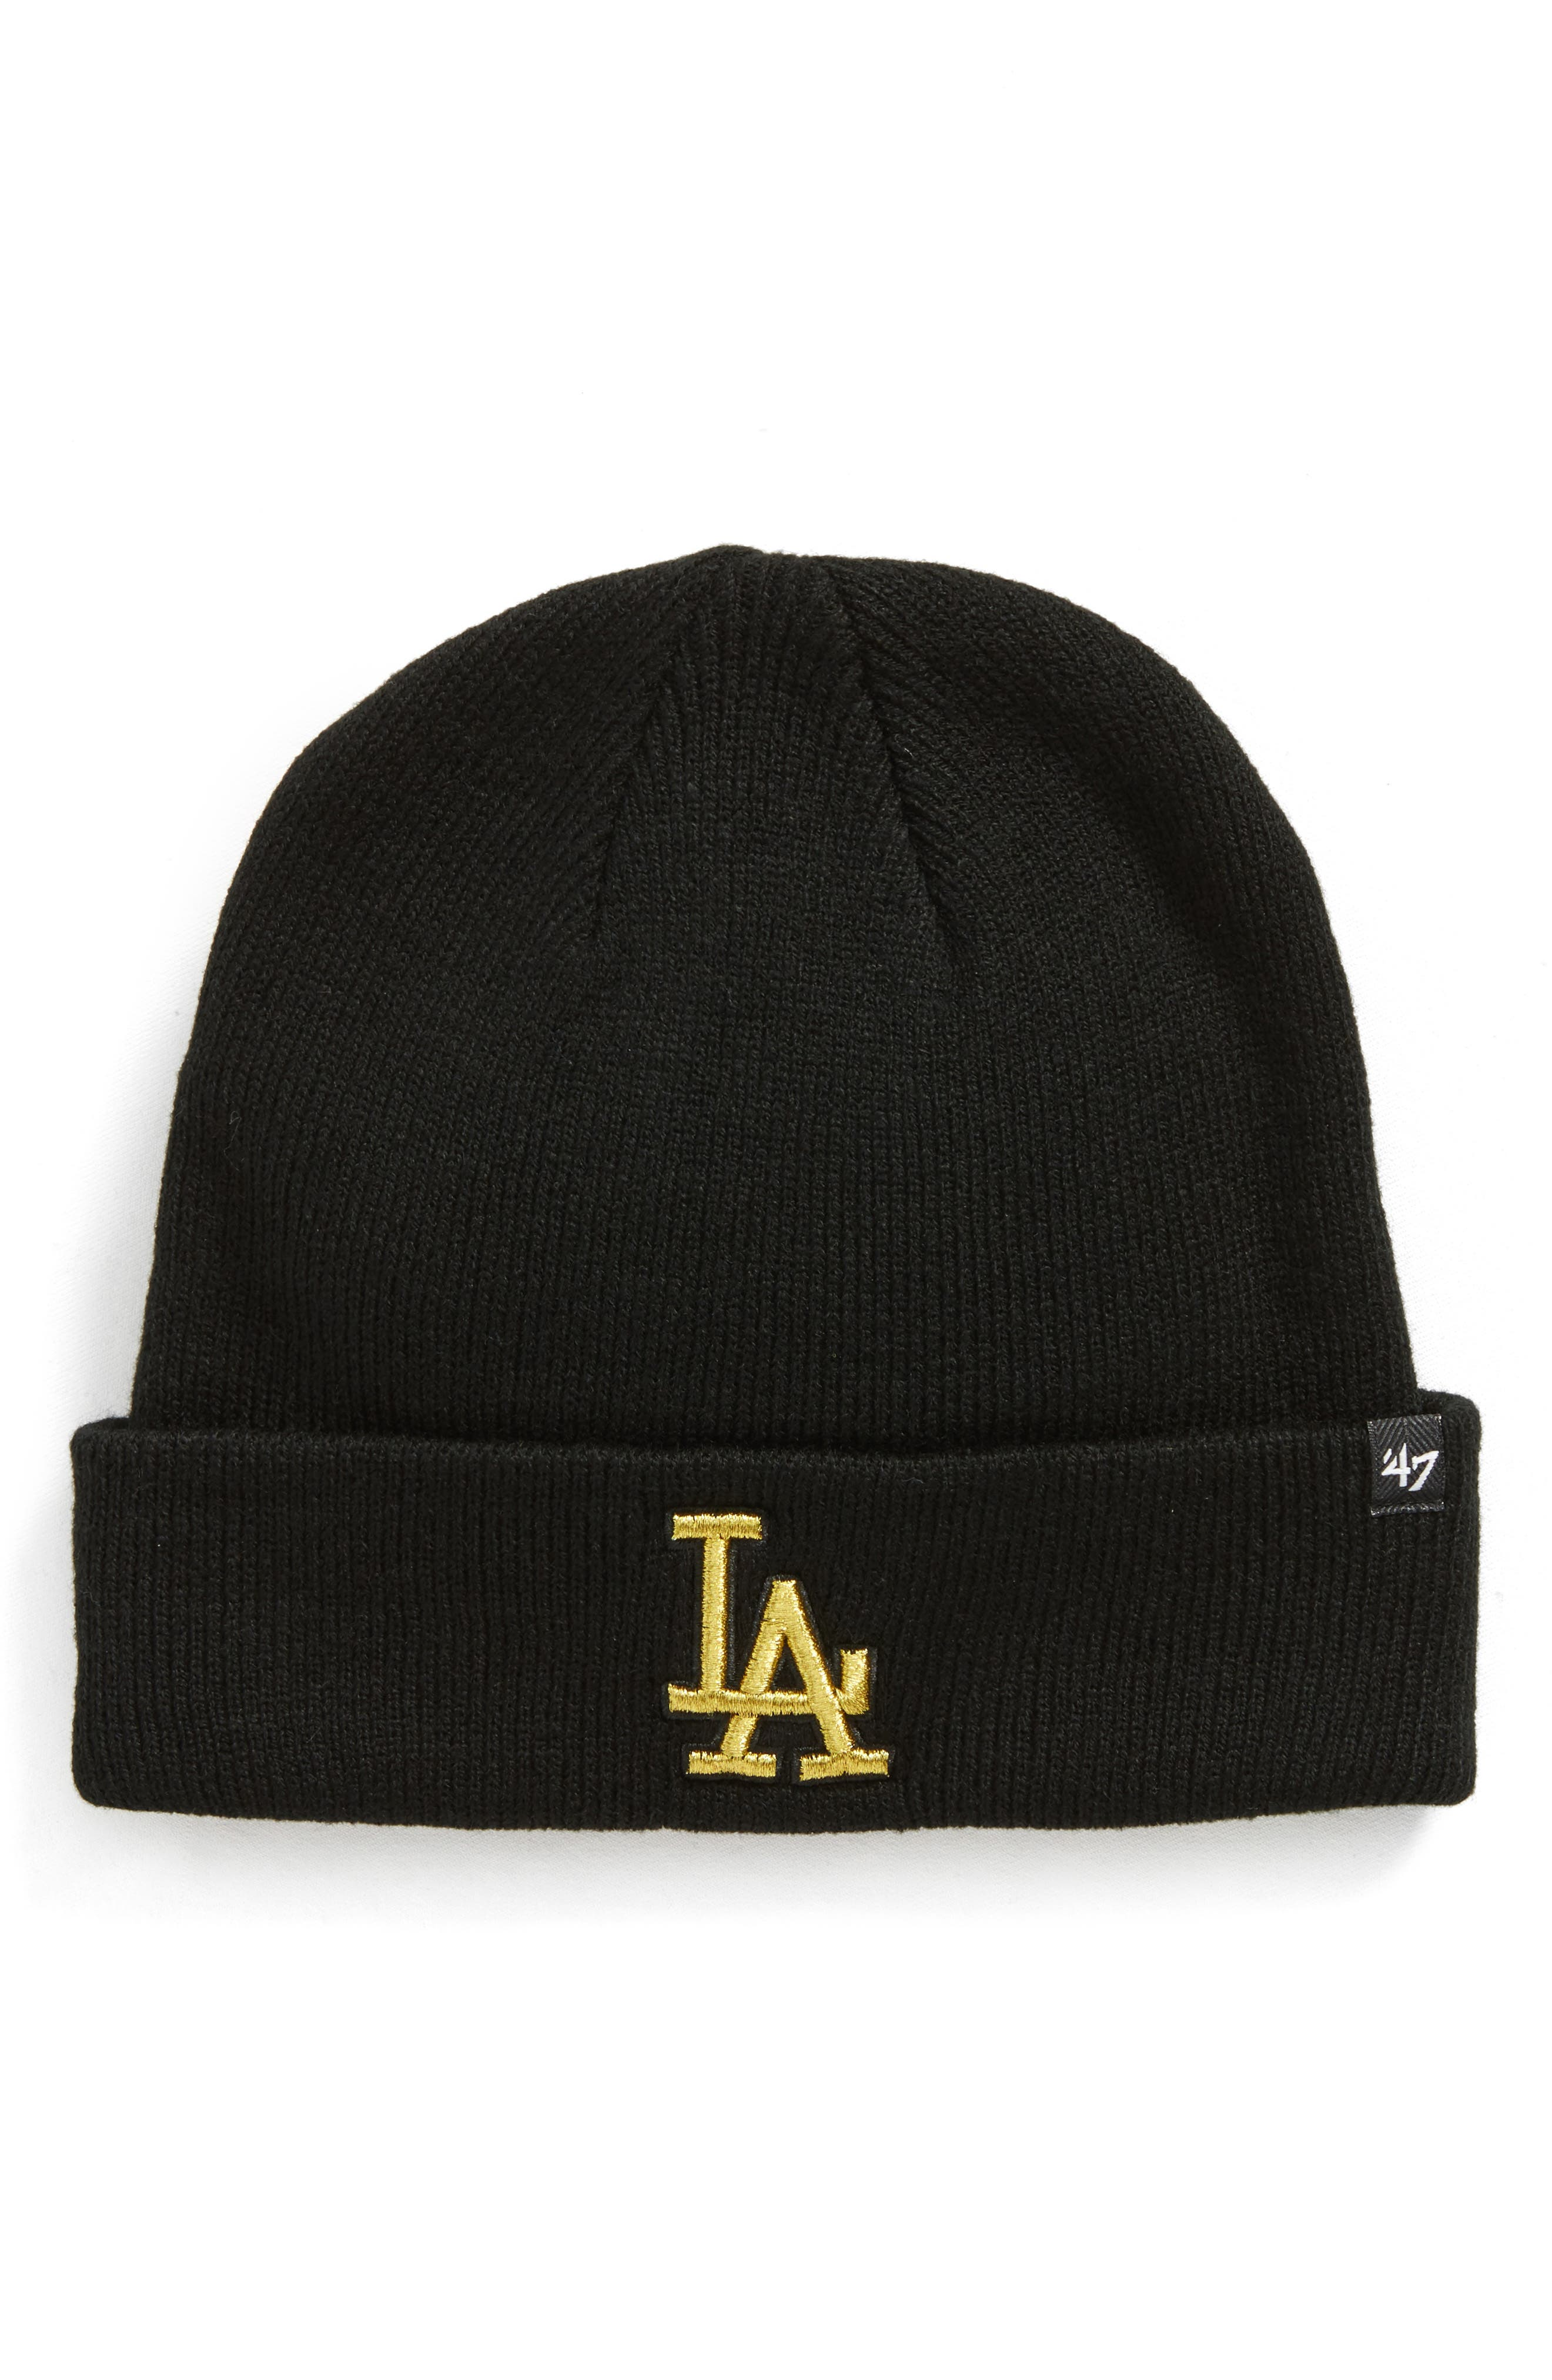 Los Angeles Dodgers Metallic Beanie,                             Main thumbnail 1, color,                             001